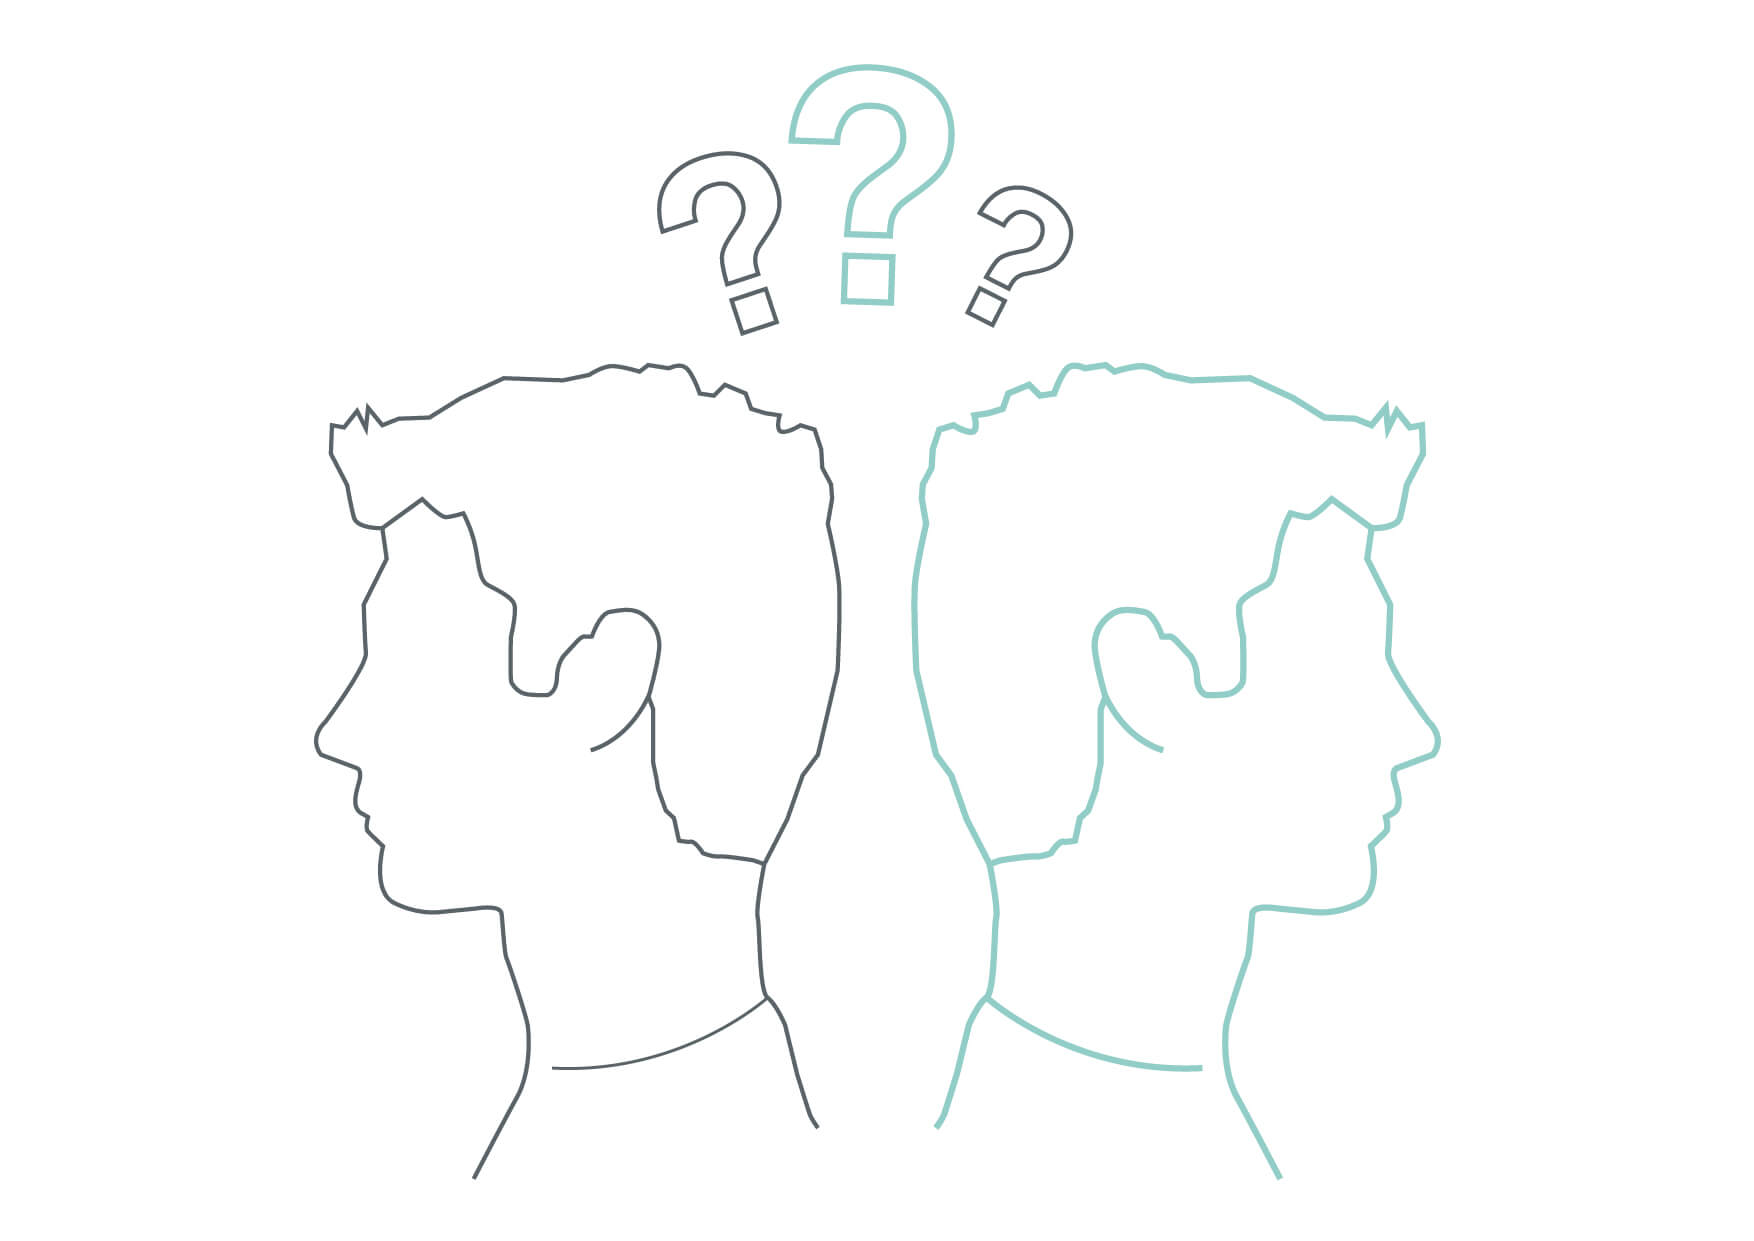 Line drawing of two people back to back with question marks abover their heads